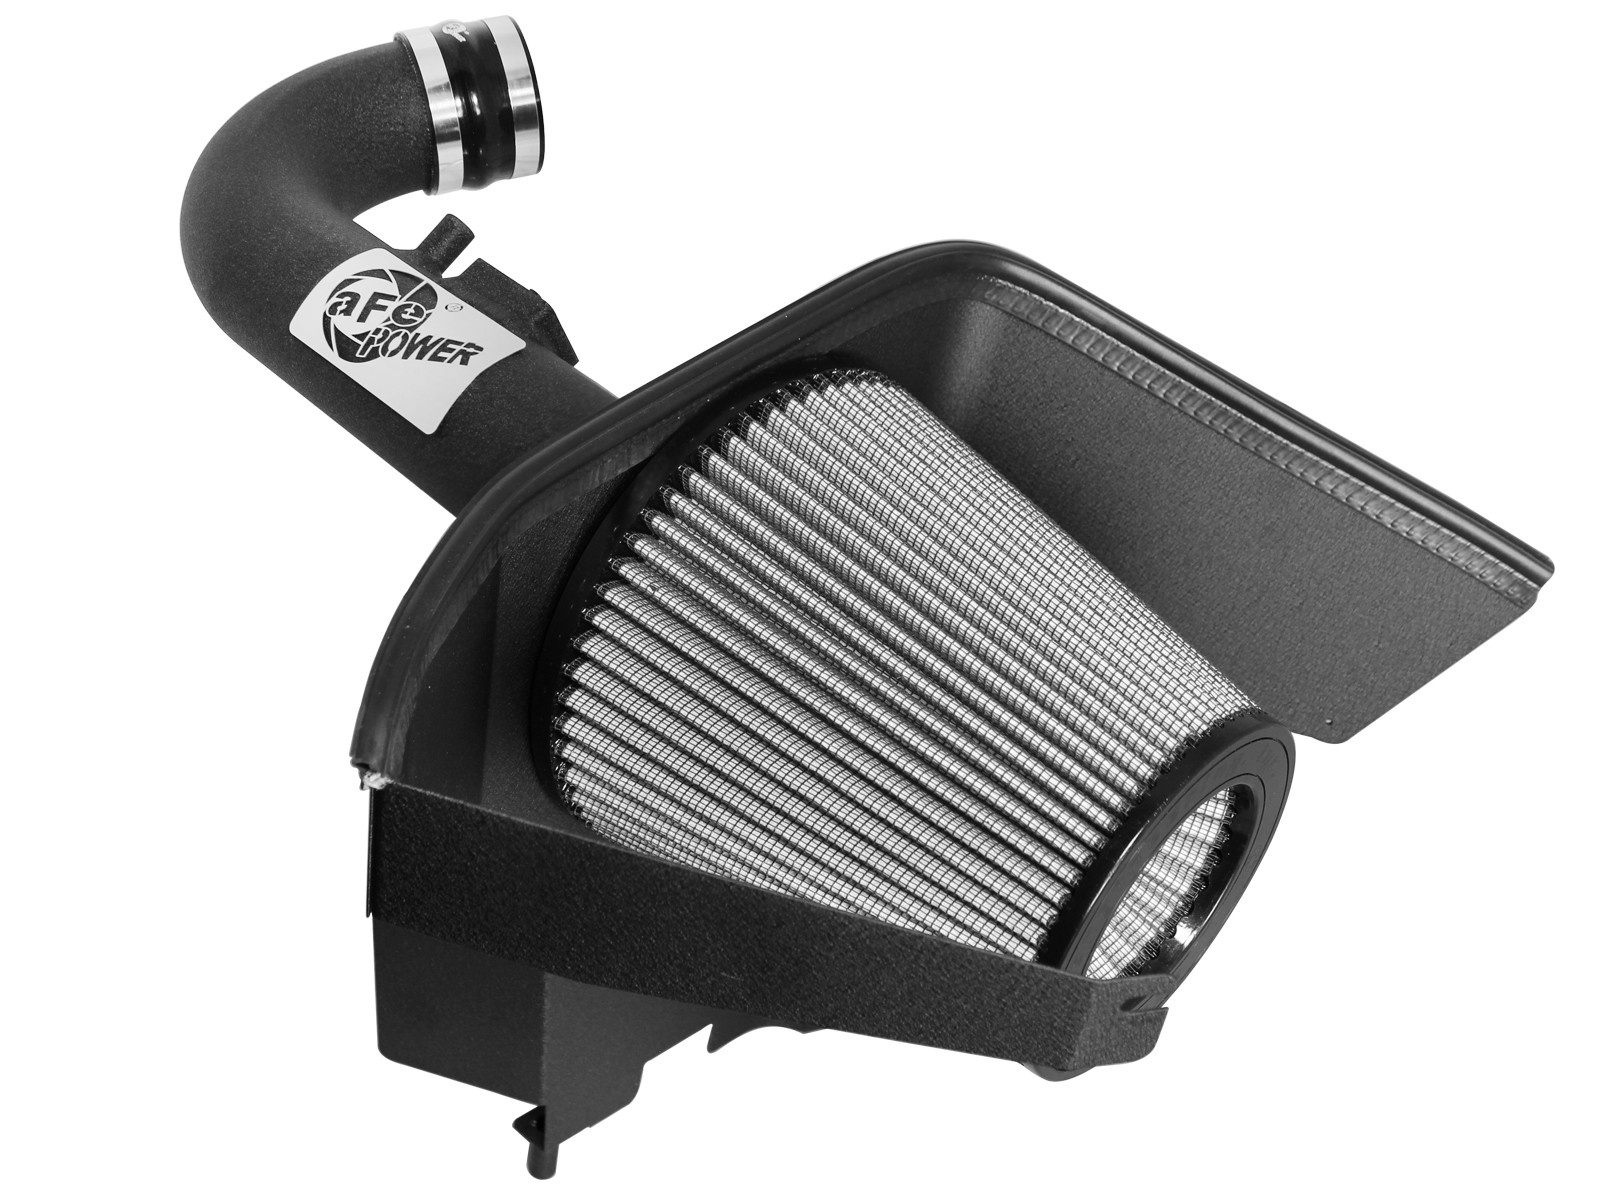 aFe POWER 51-12022 Magnum FORCE Stage-2 Pro DRY S Cold Air Intake System